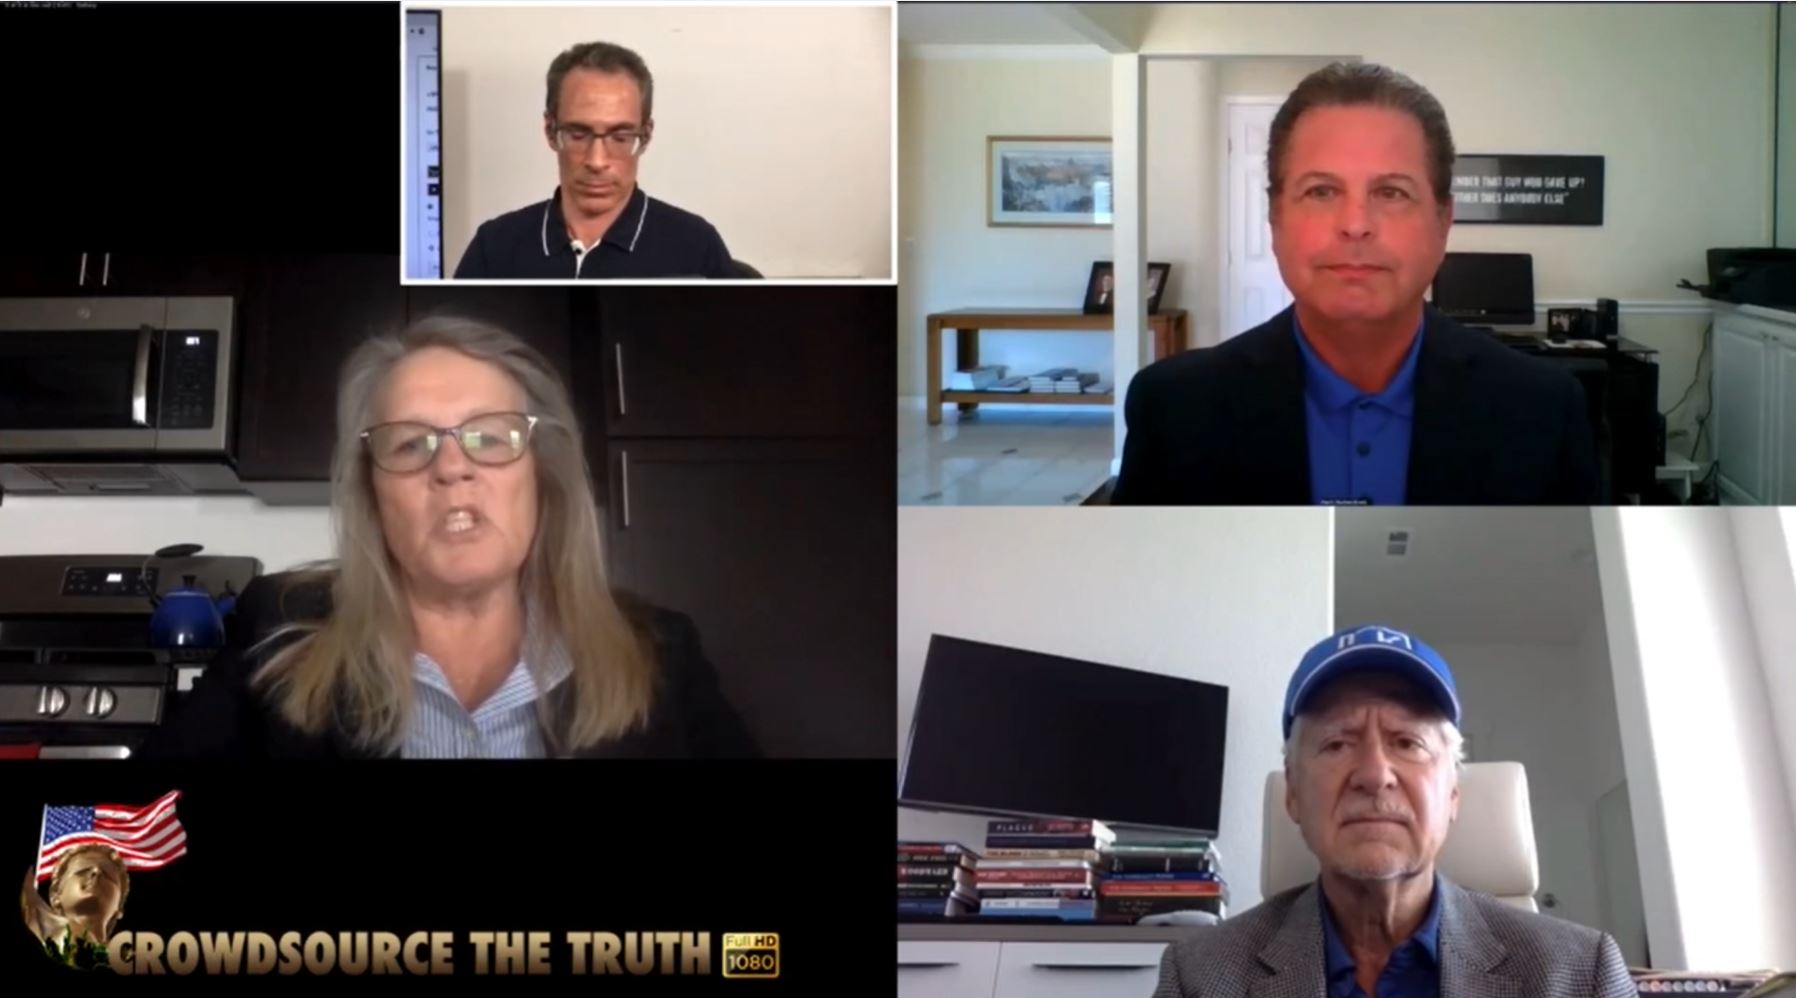 The Silencing of Dr. Judy Mikovits with Guests Dr. Judy Mikovits, Kent Heckenlively & Larry Klayman